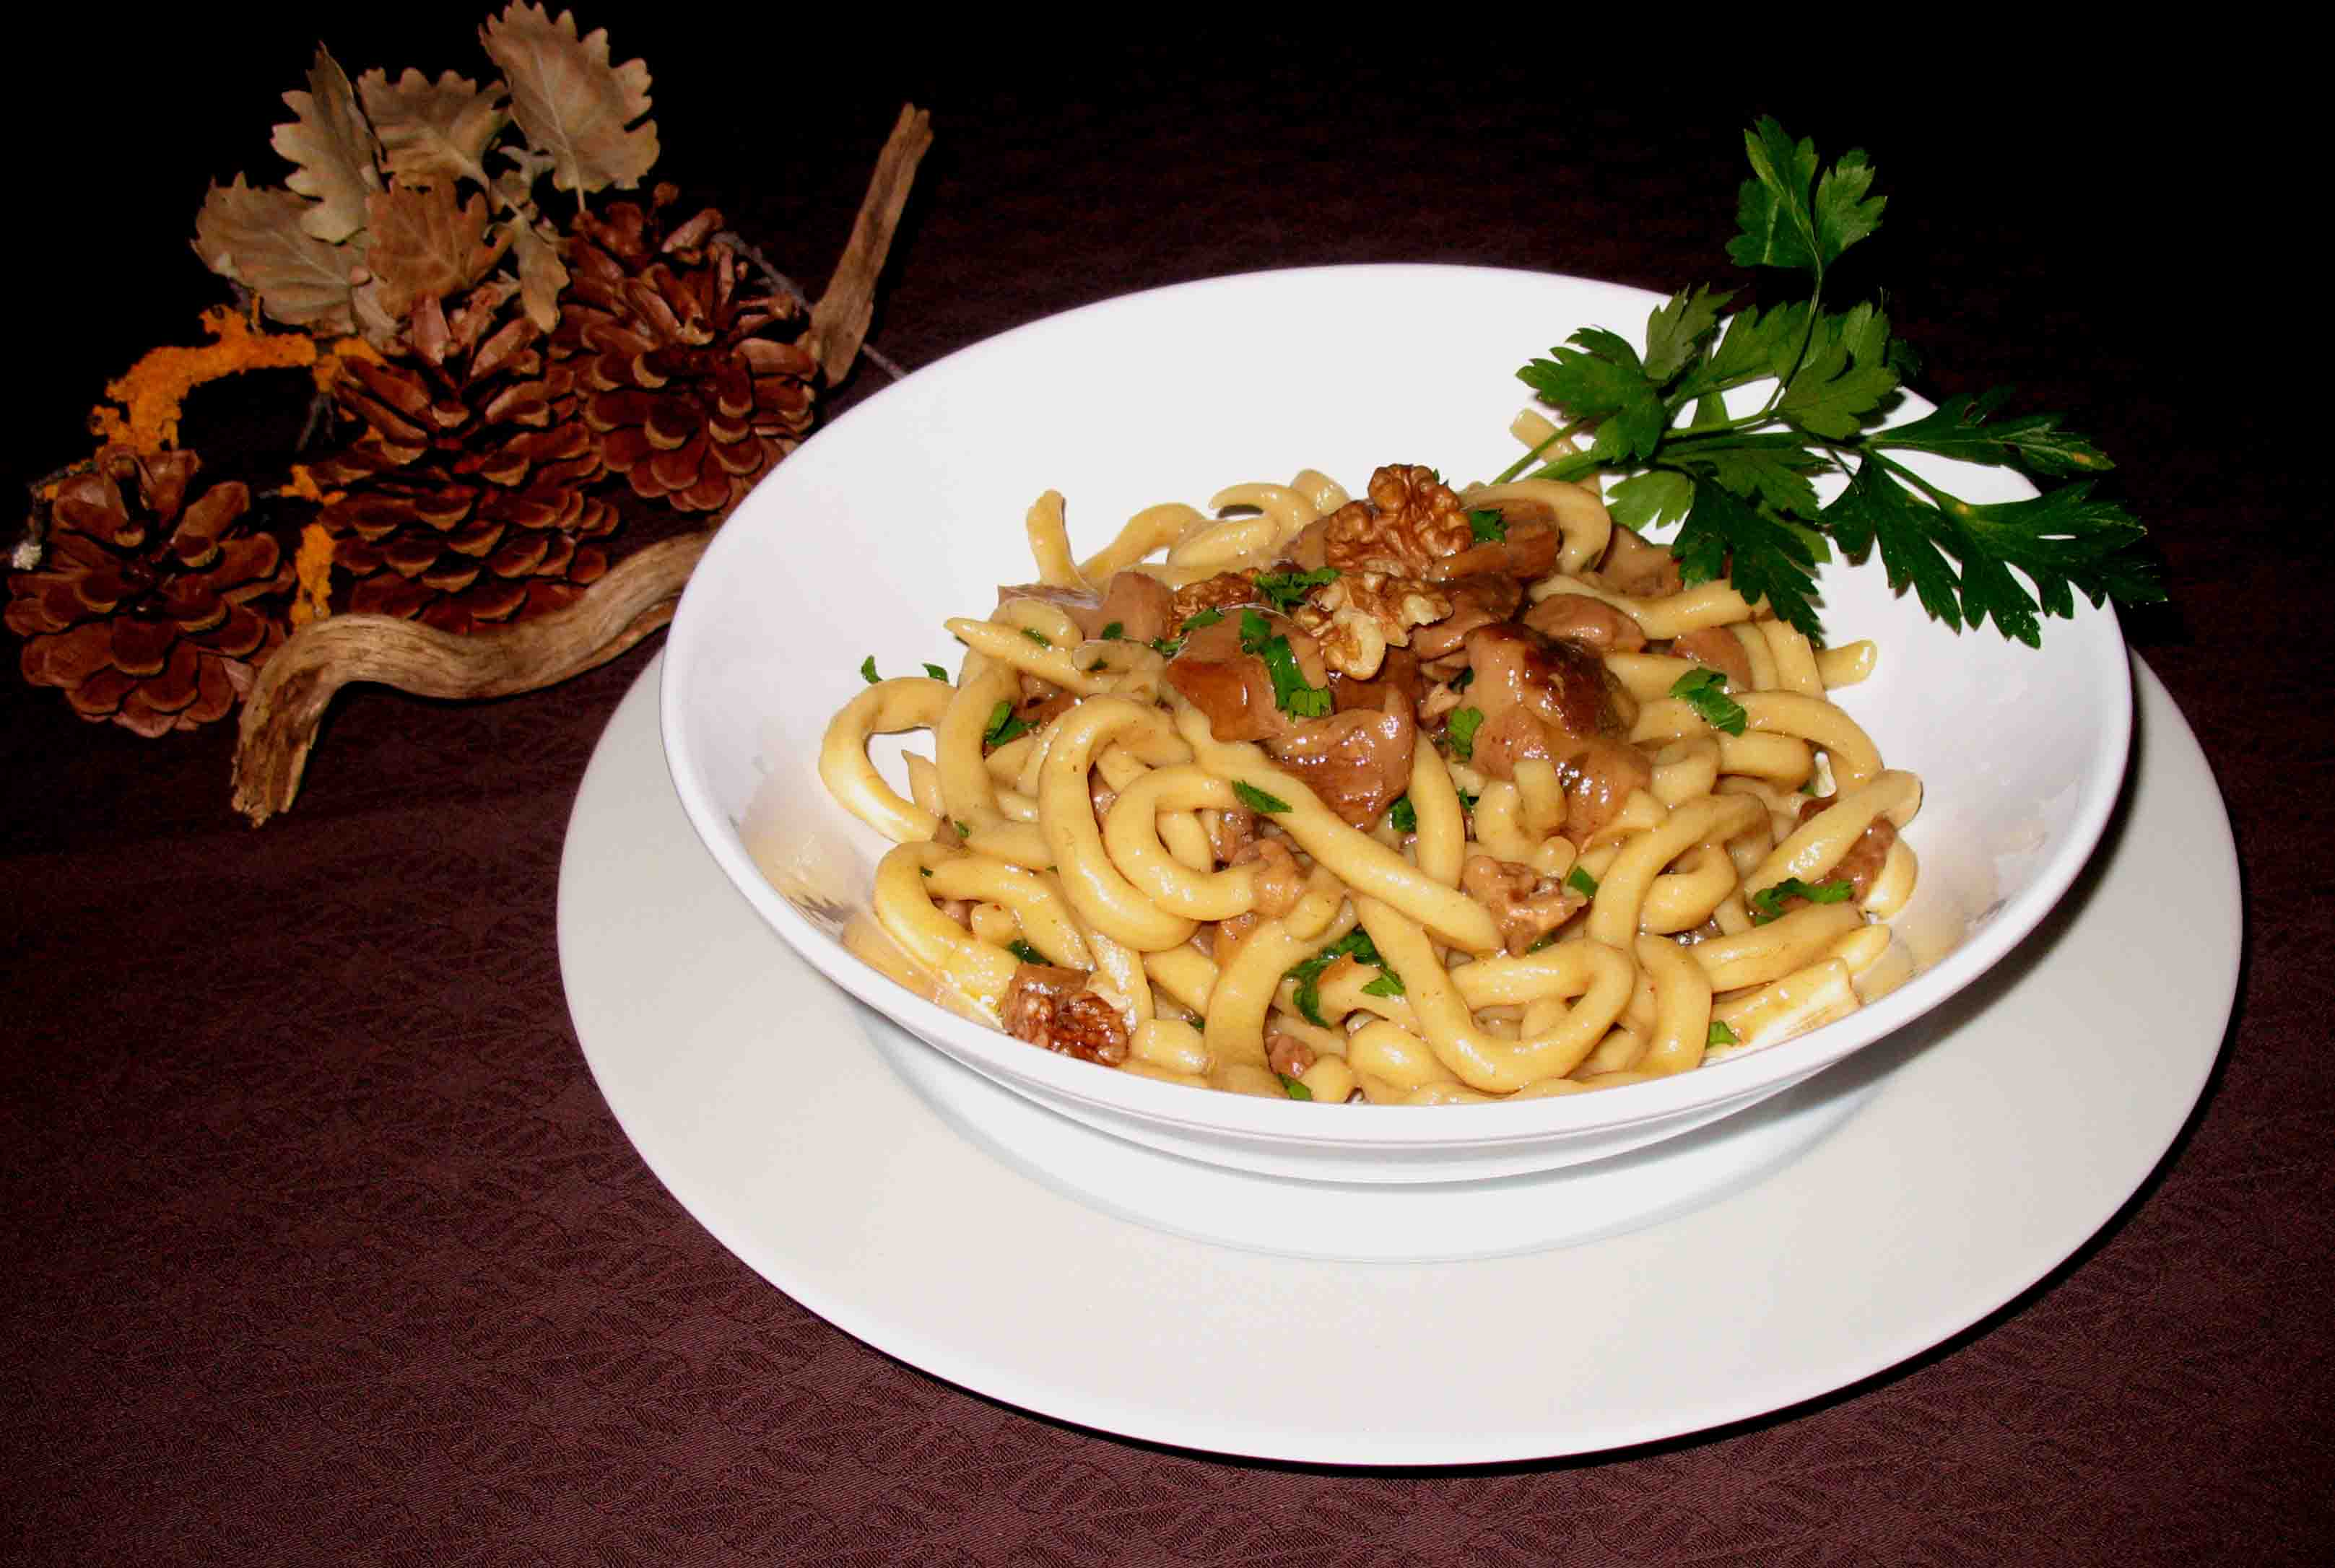 Strozzapreti with porcini mushrooms and nuts